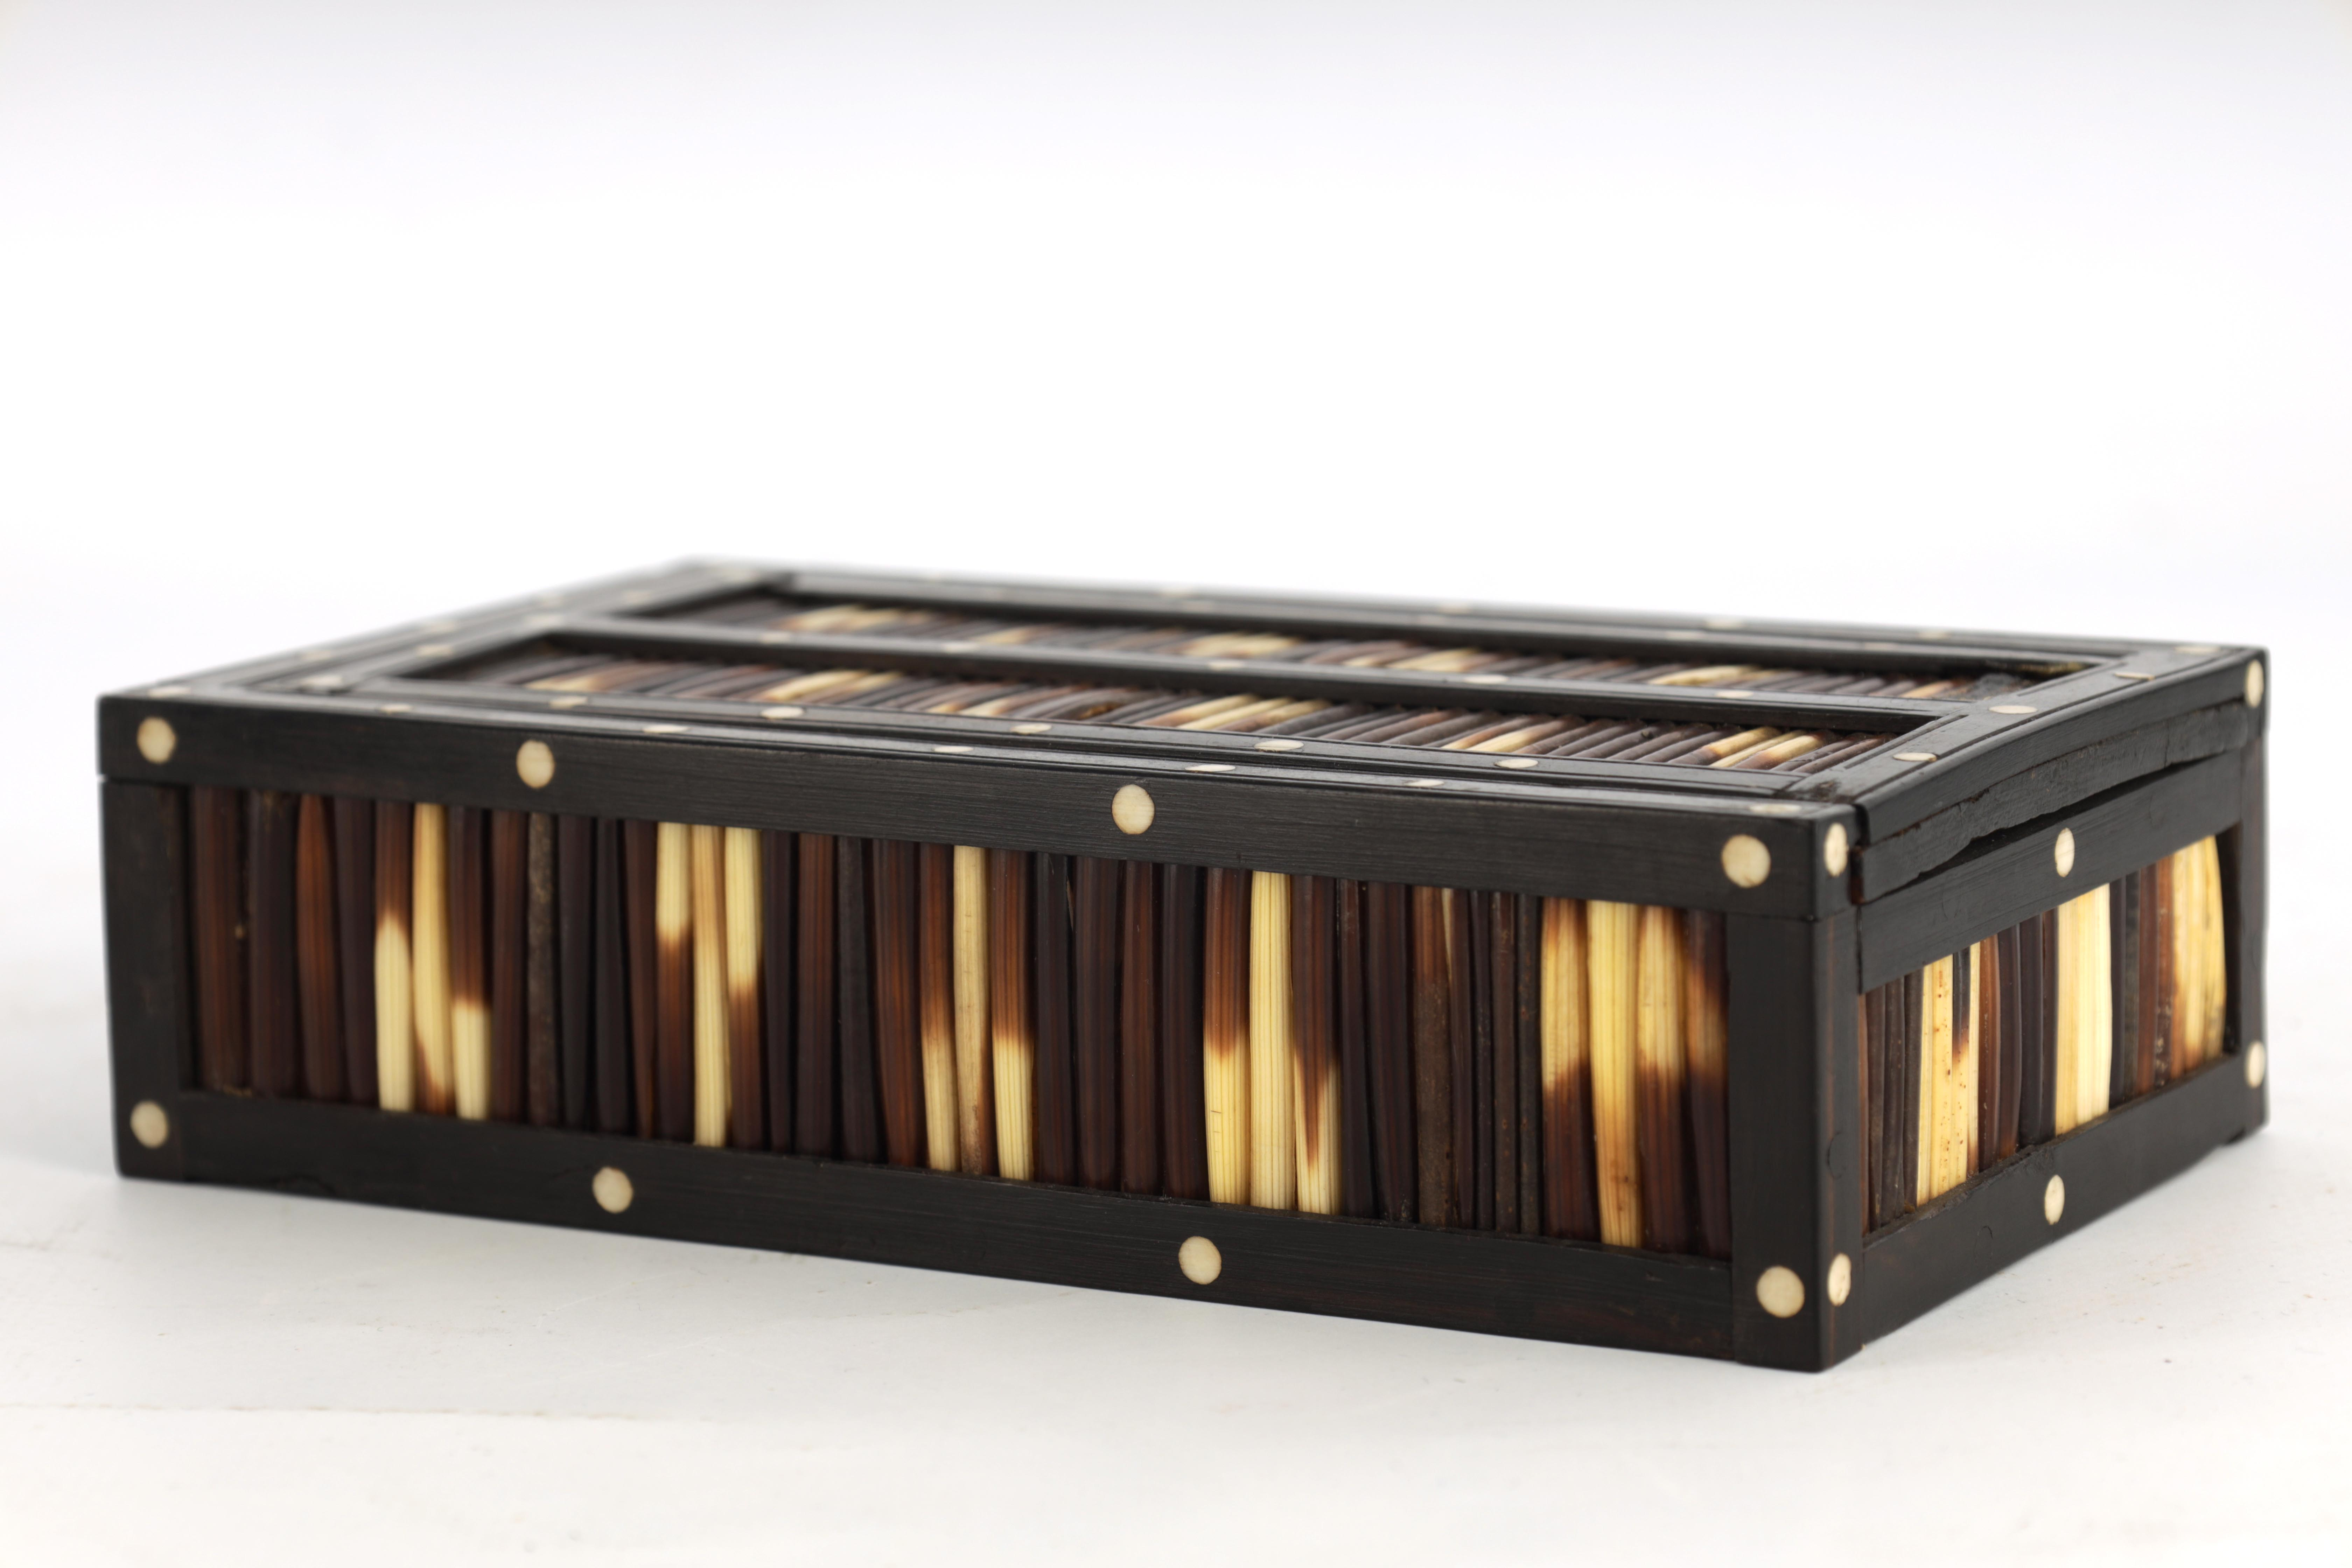 A 19TH CENTURY QUILL BOX with ebony and bone inlaid edges 17cm wide 9.5cm deep 4.5cm high - Image 3 of 7